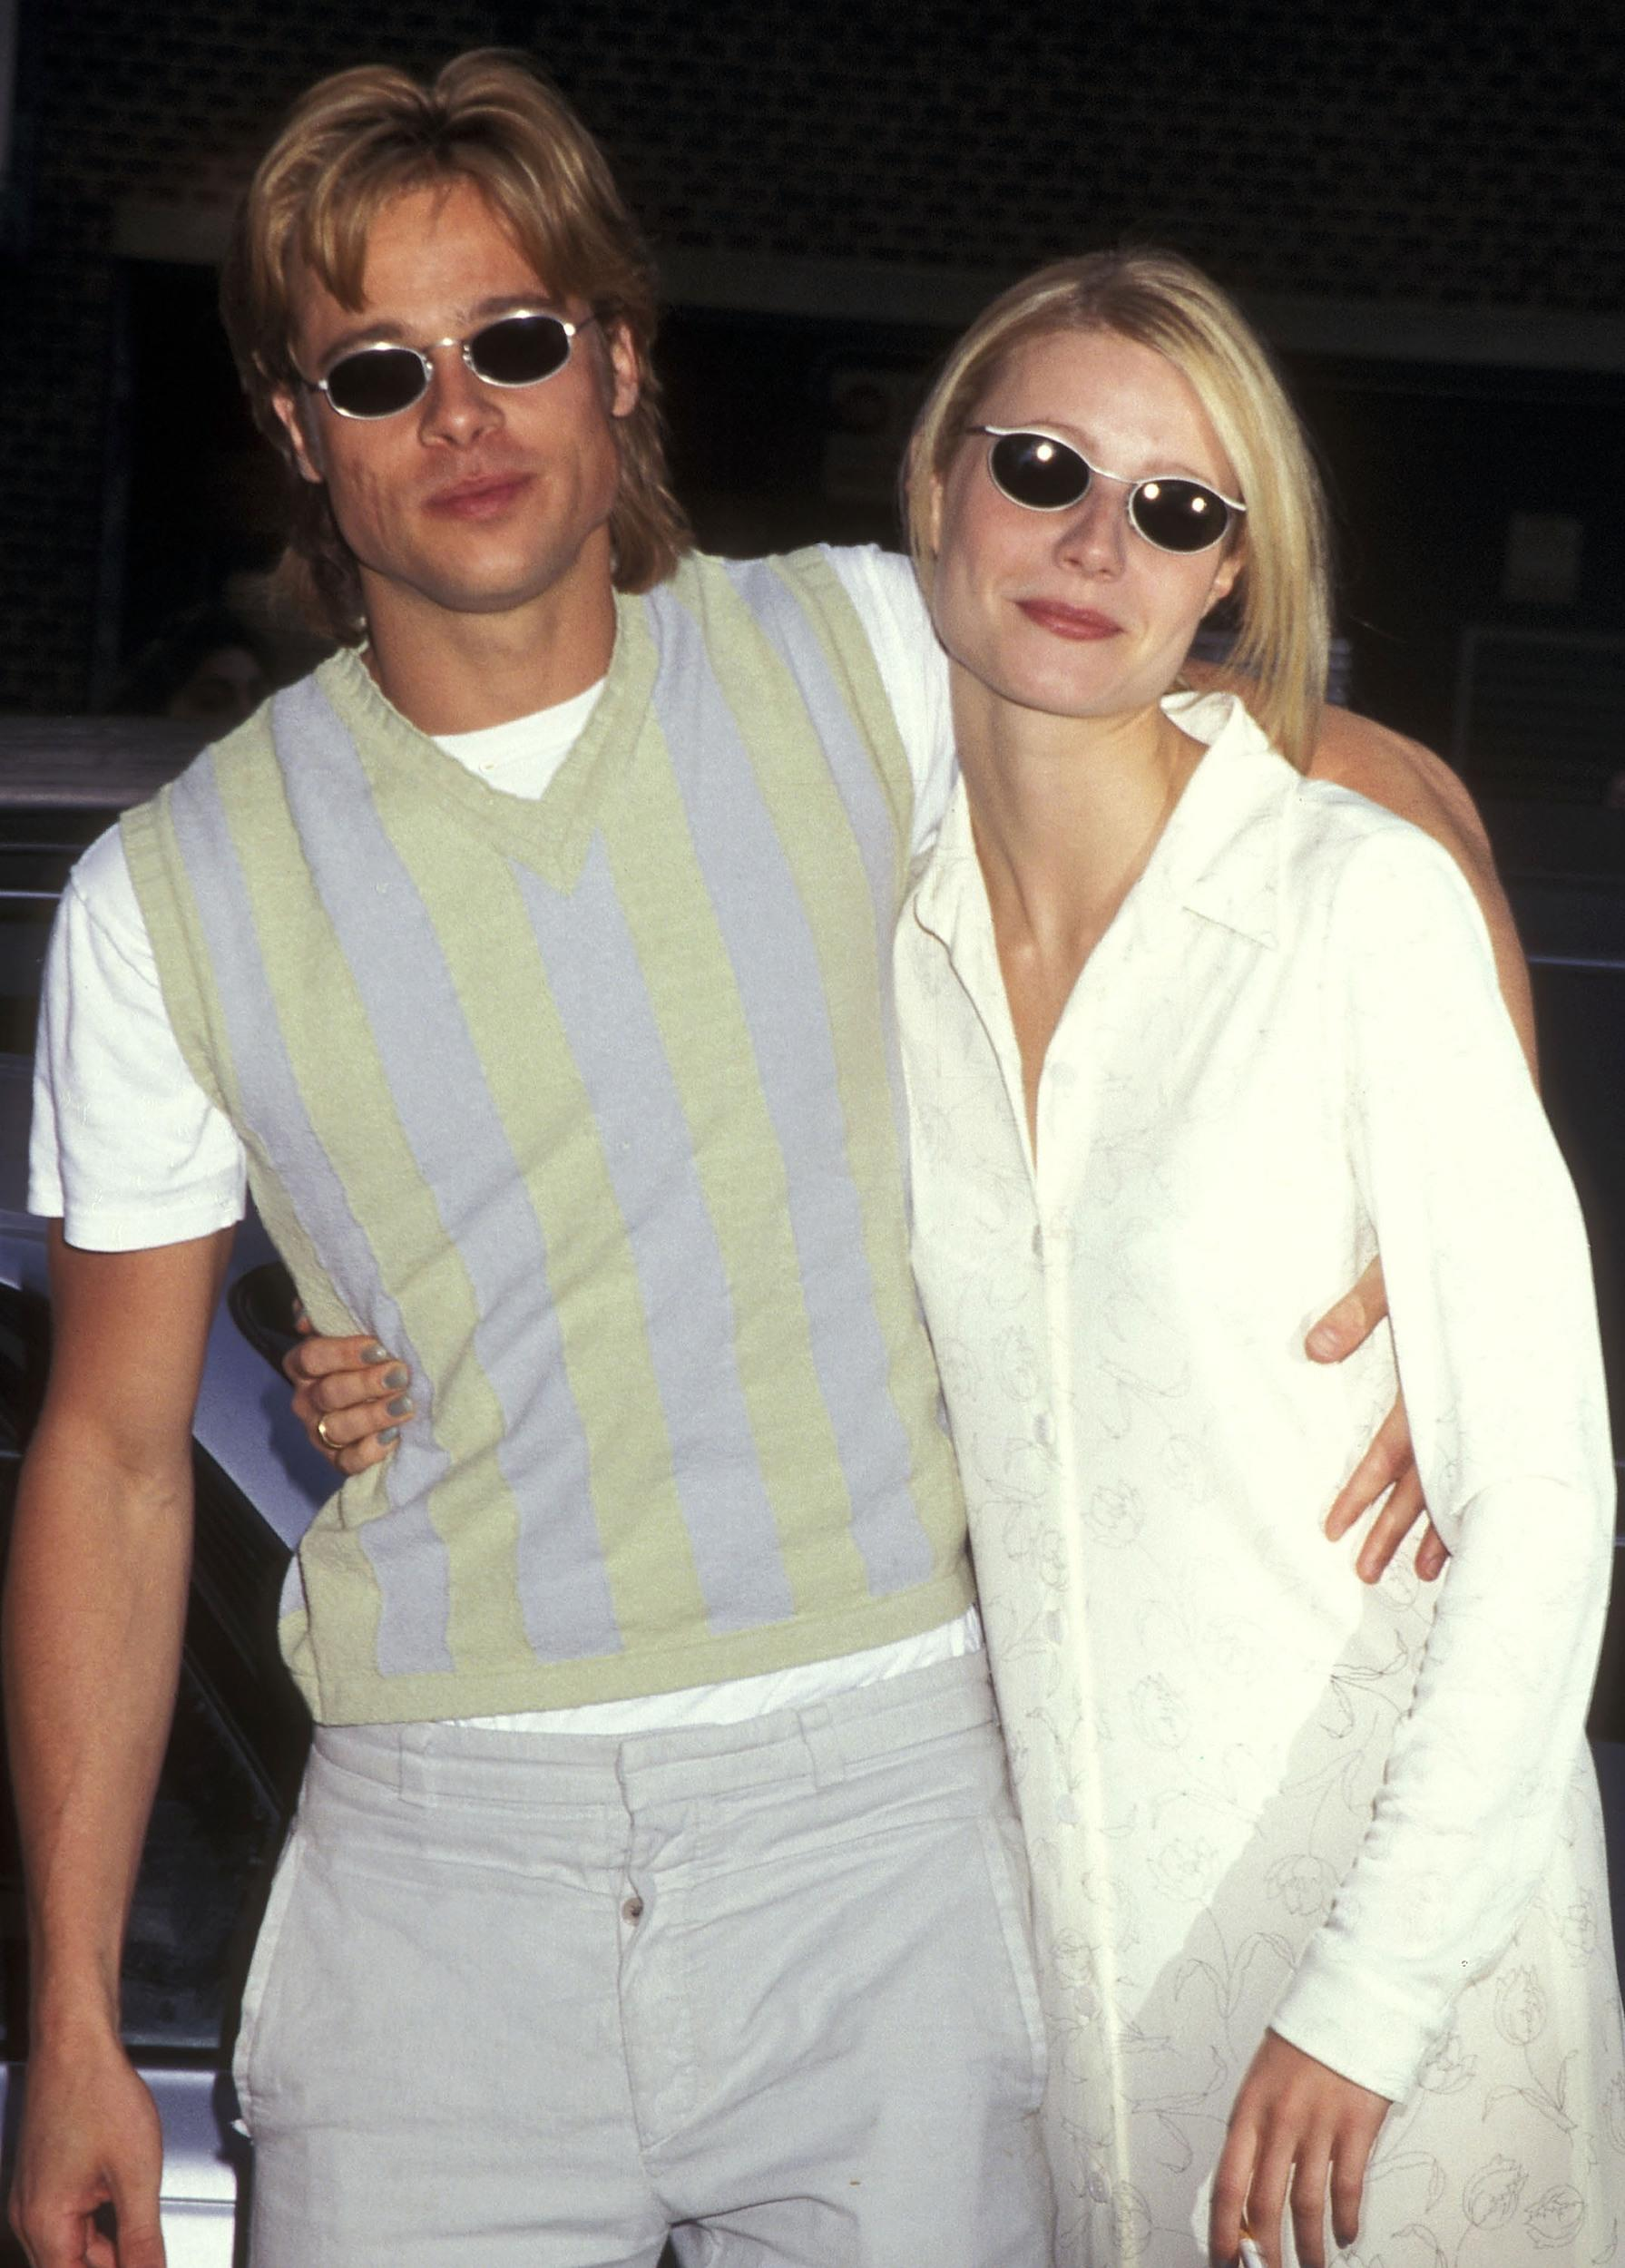 Actor Brad Pitt and actress Gwyneth Paltrow attend 'The Pallbearer' New York City Premiere on April 28, 1996 at the Tribeca Film Center in New York City. (Photo by Ron Galella, Ltd./WireImage)